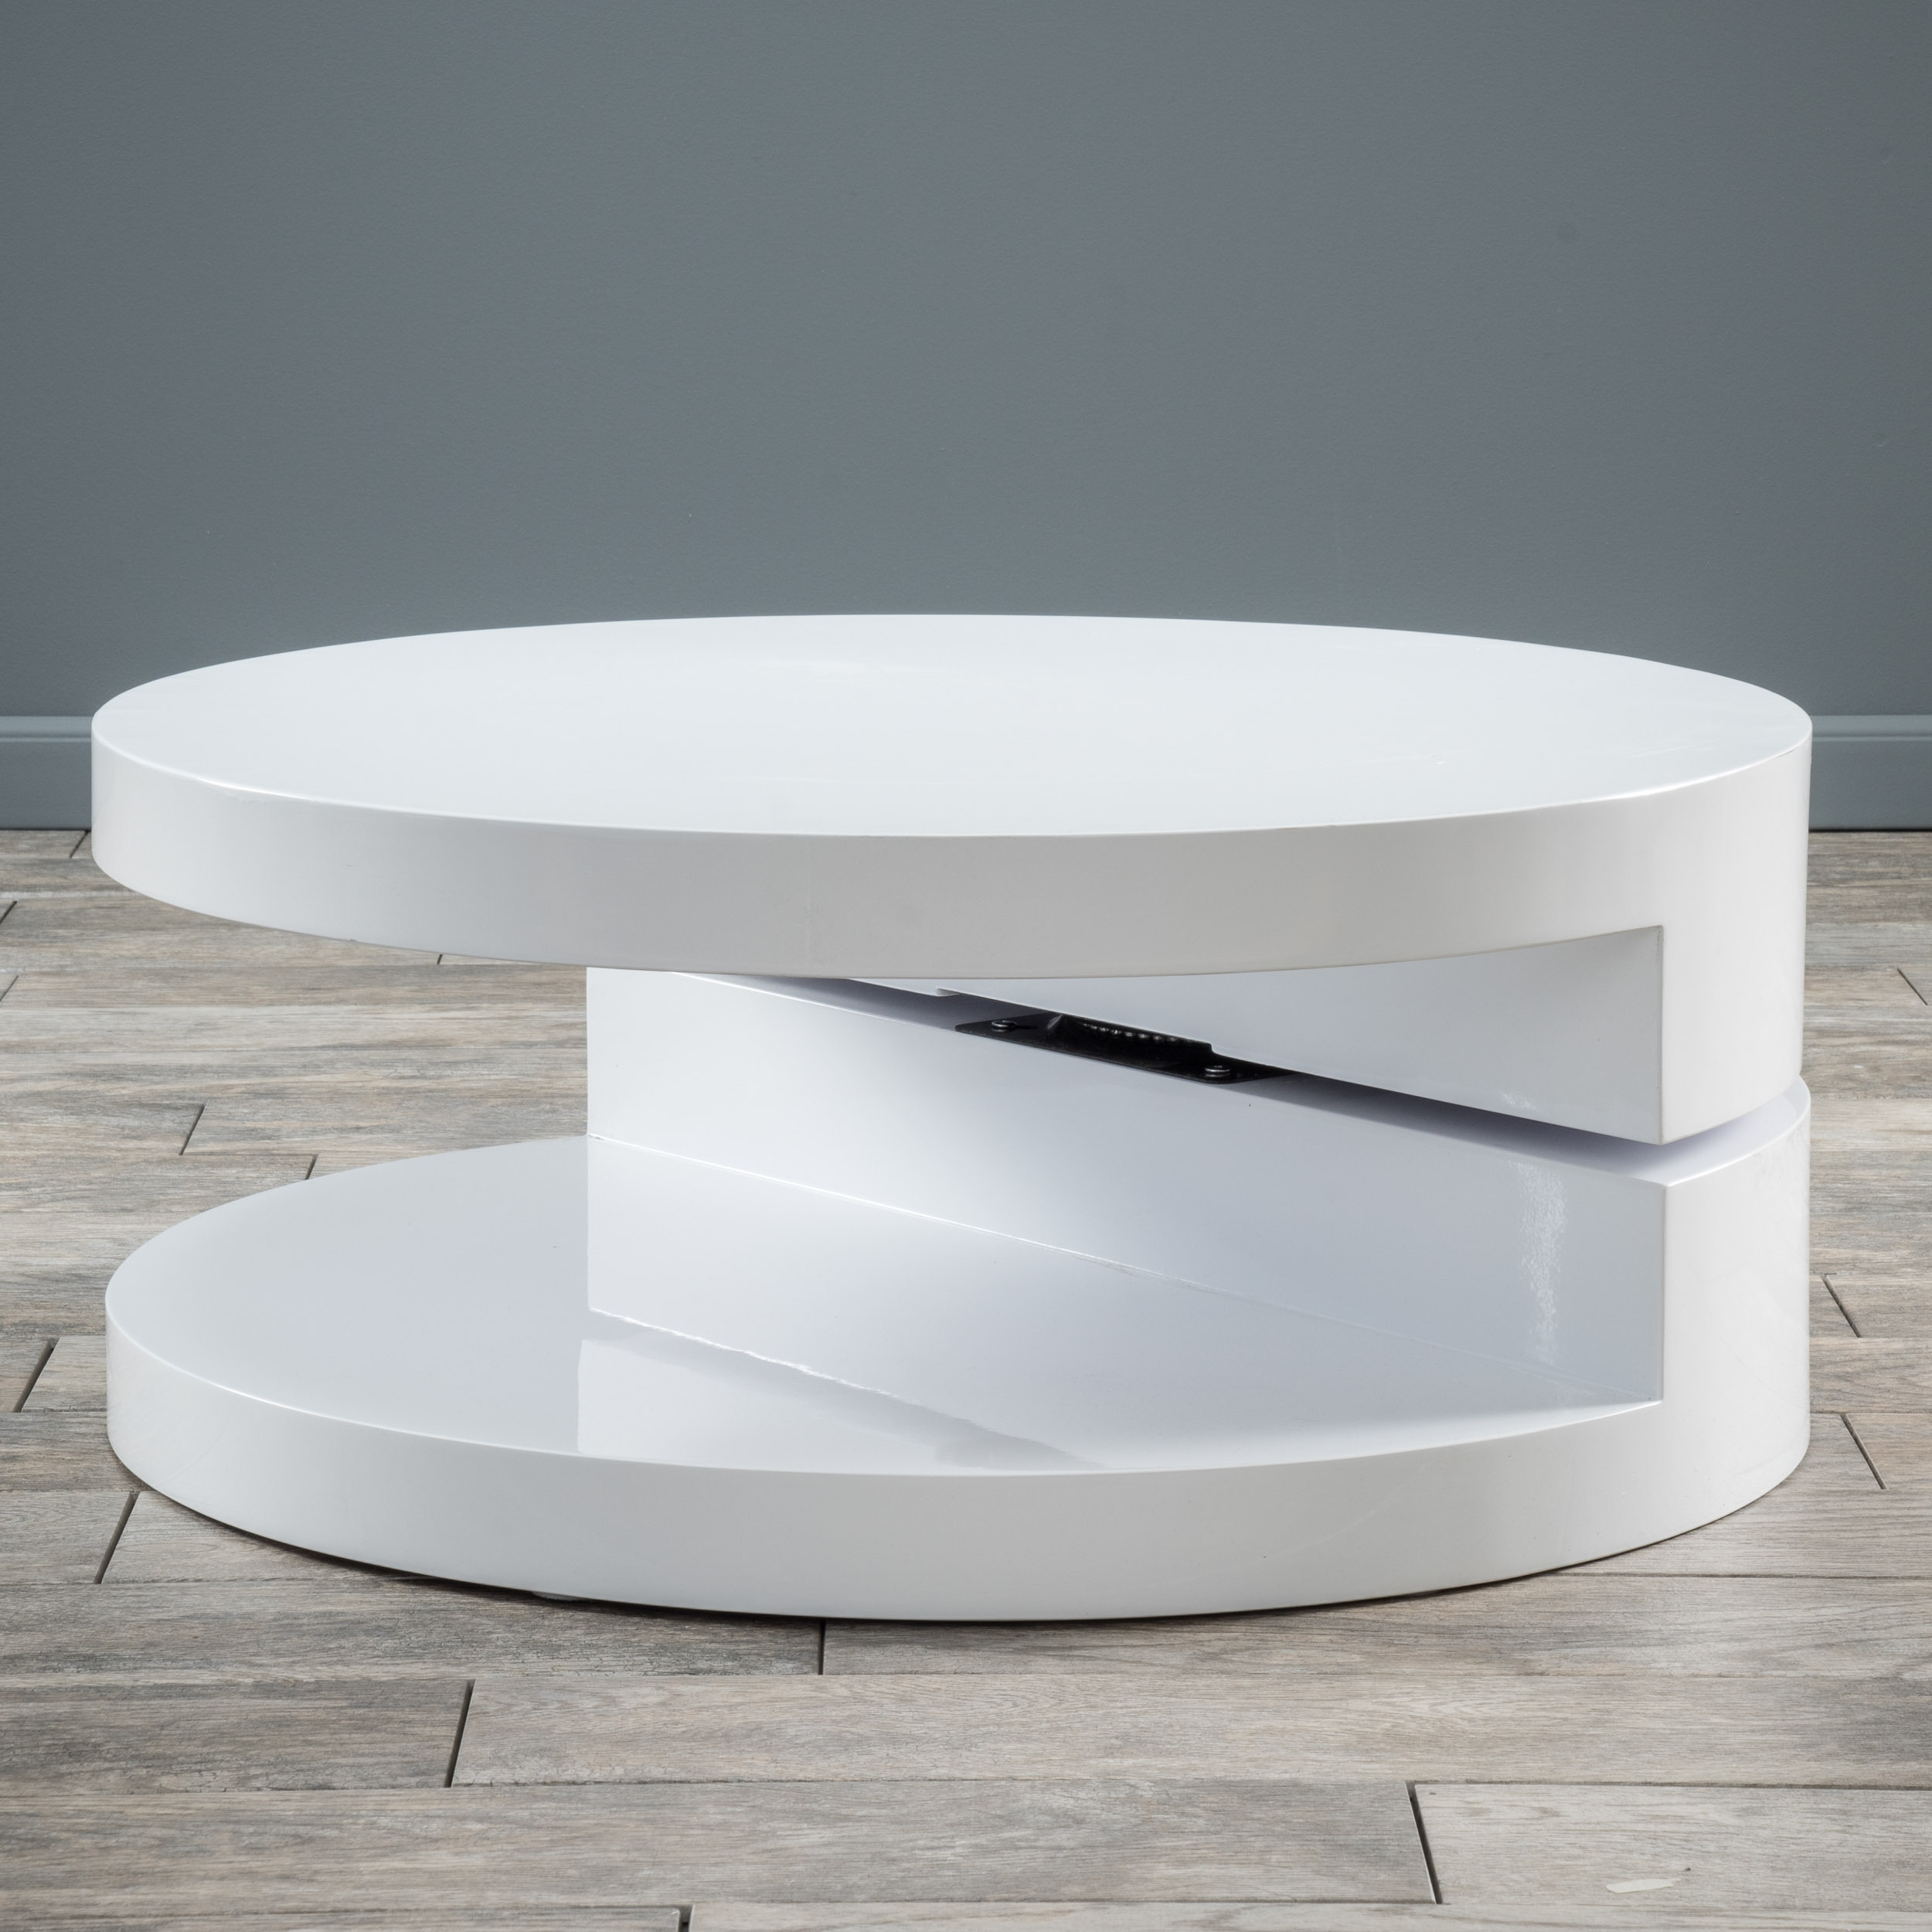 Alluring White Round Table Wood Material Glossy Finish Coffee Table Regarding Spin Rotating Coffee Tables (View 5 of 30)